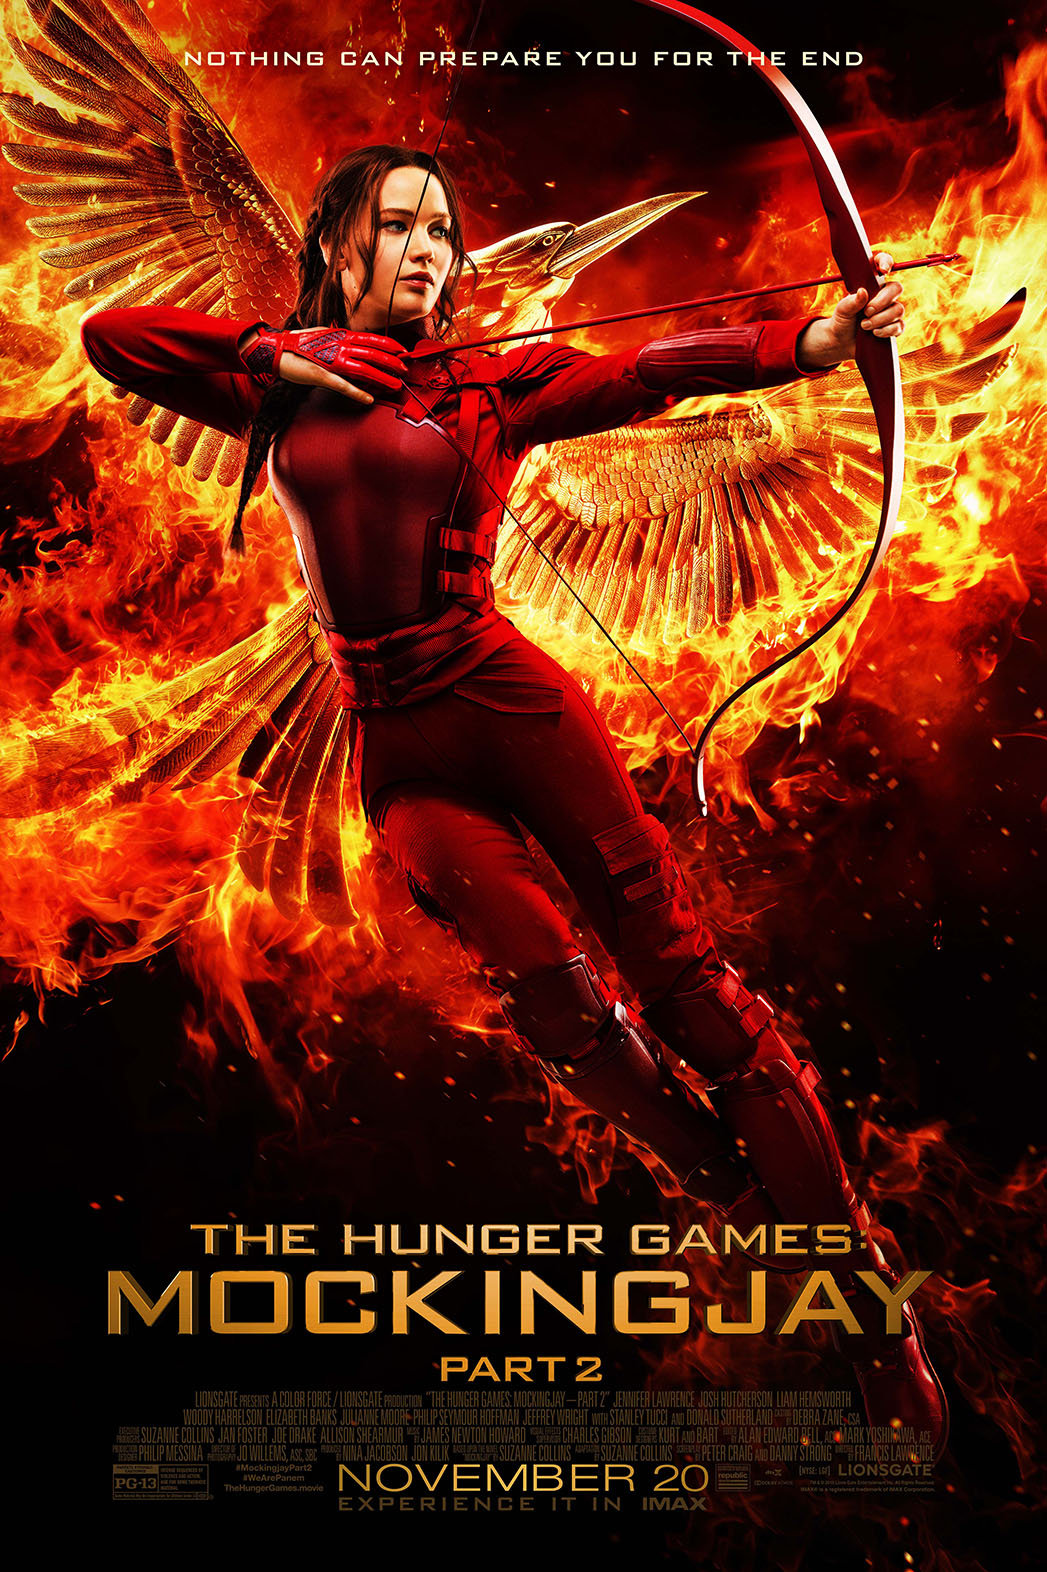 The Hunger Games Mockingjay Part 2 Poster - P 2015